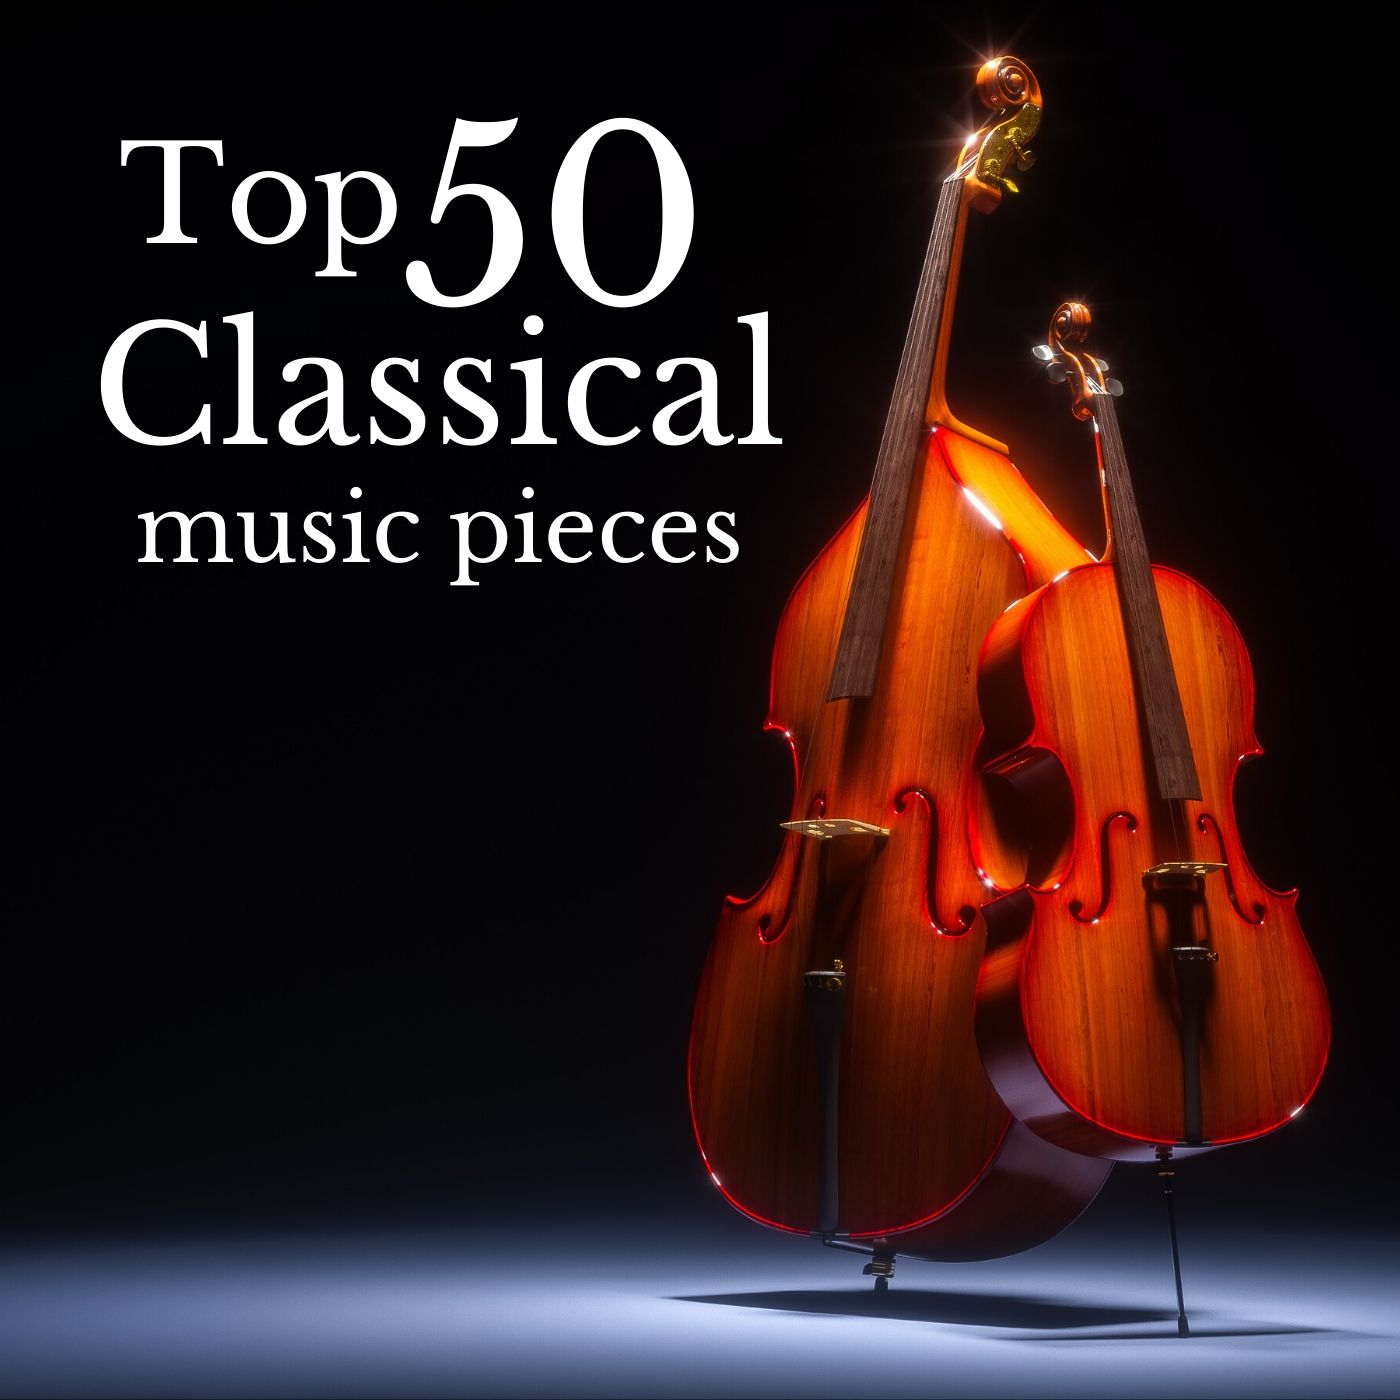 Top 50 Classical Music Pieces